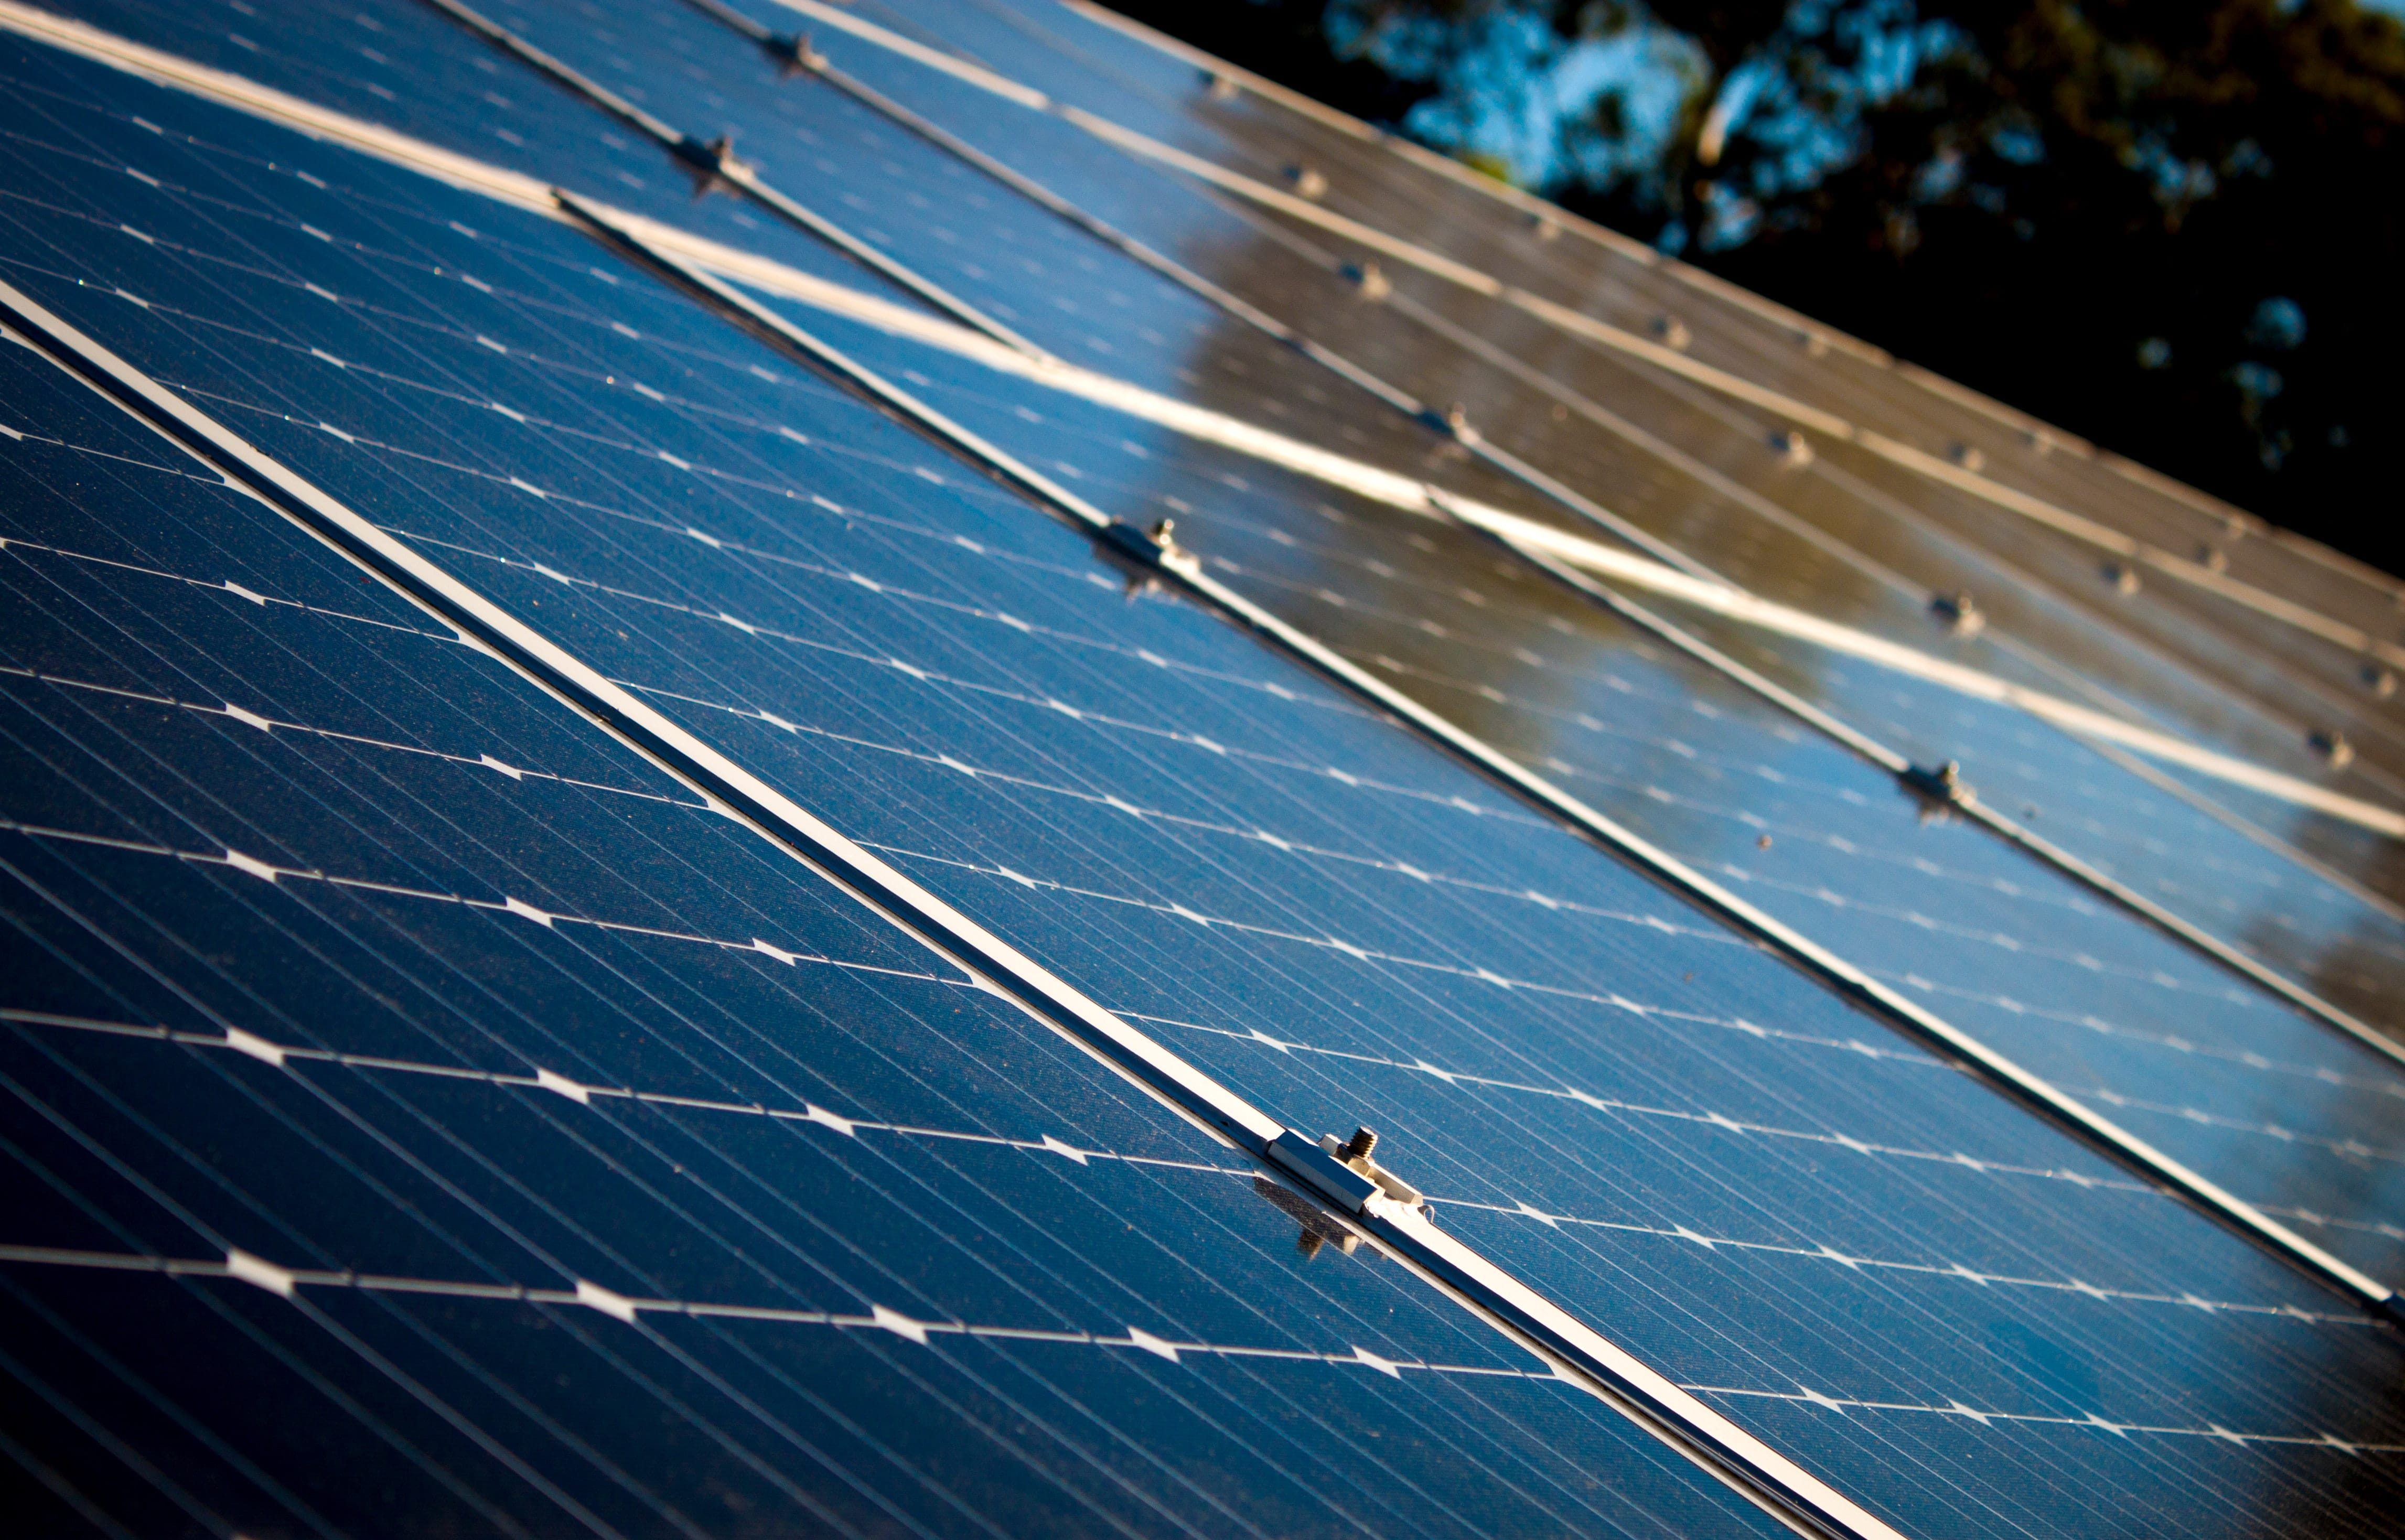 UK Heatwave Helps Solar Power to Record Weekly Highs - Boston Renewables